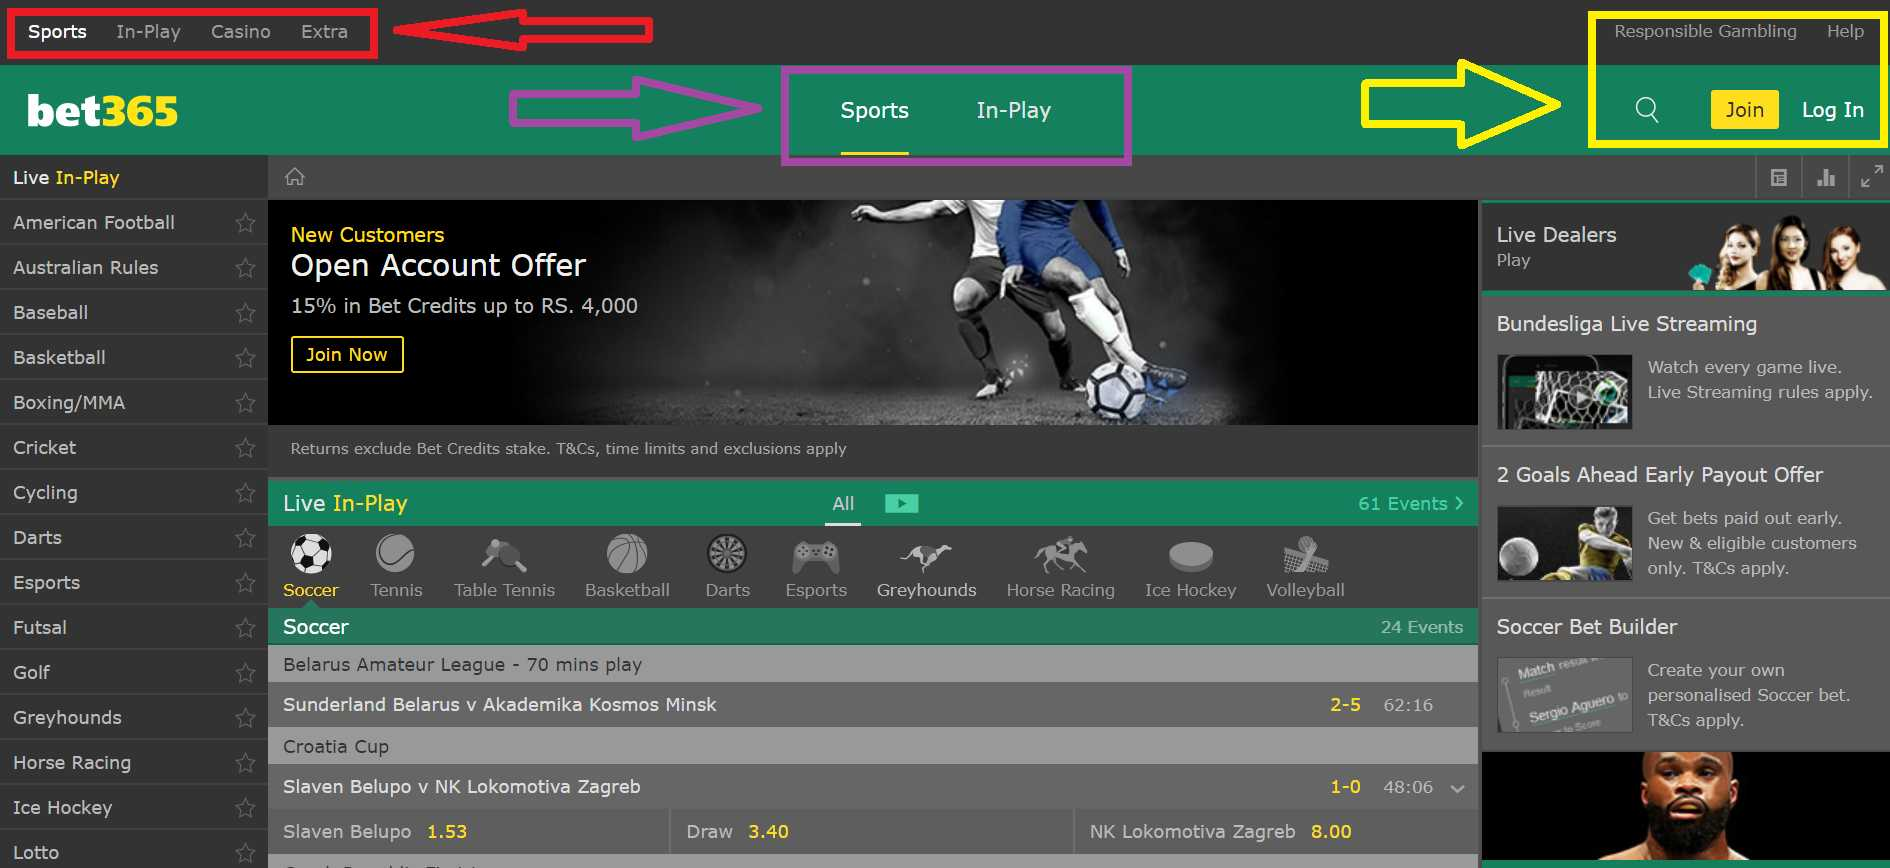 Conclusion on Using Bet365 Mirror Link